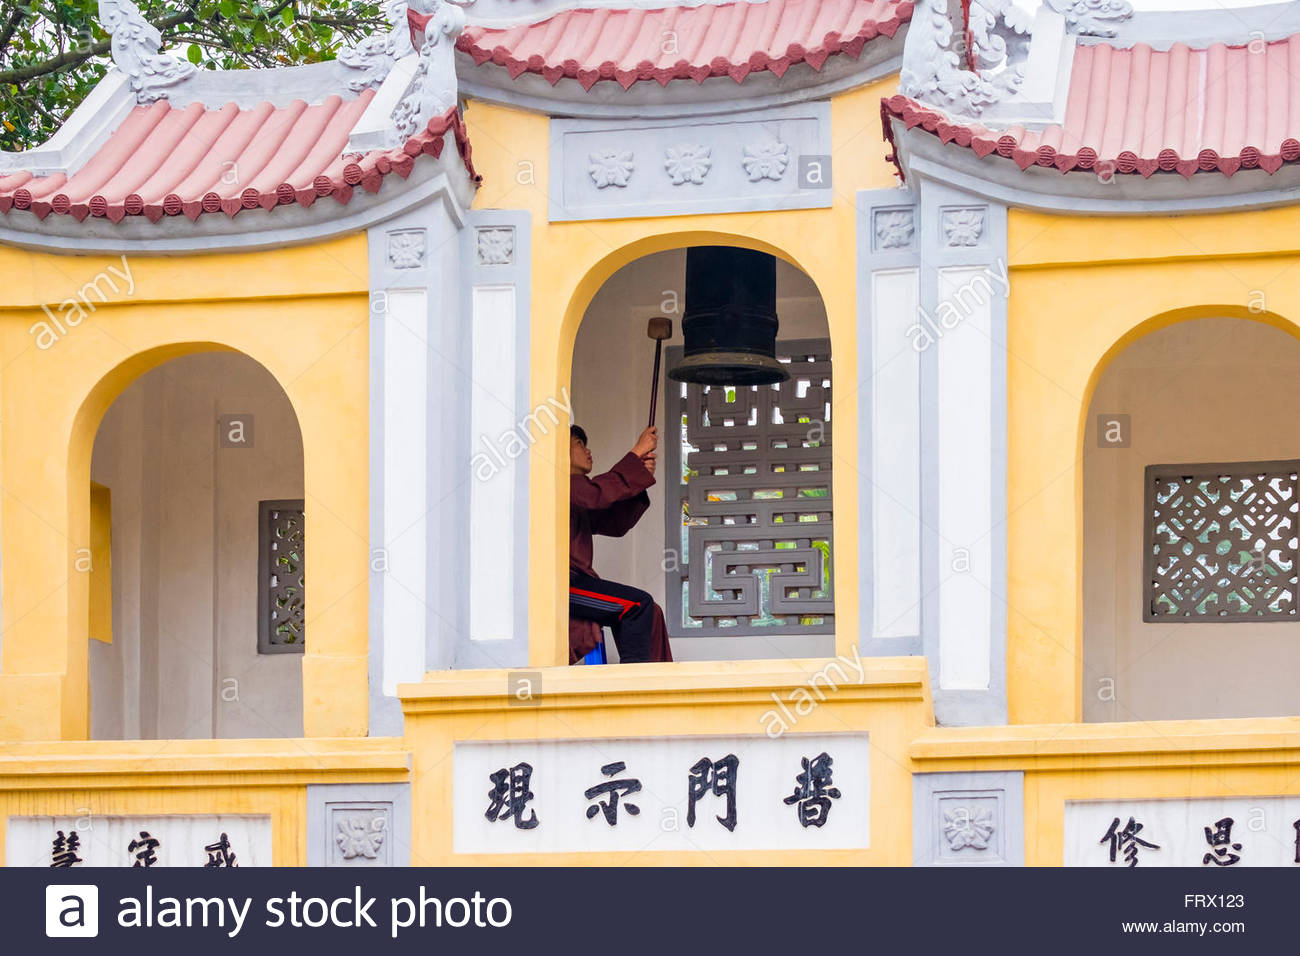 A novice monk rings a bell at One Pillar Pagoda temple complex, Hanoi, Vietnam - Stock Image